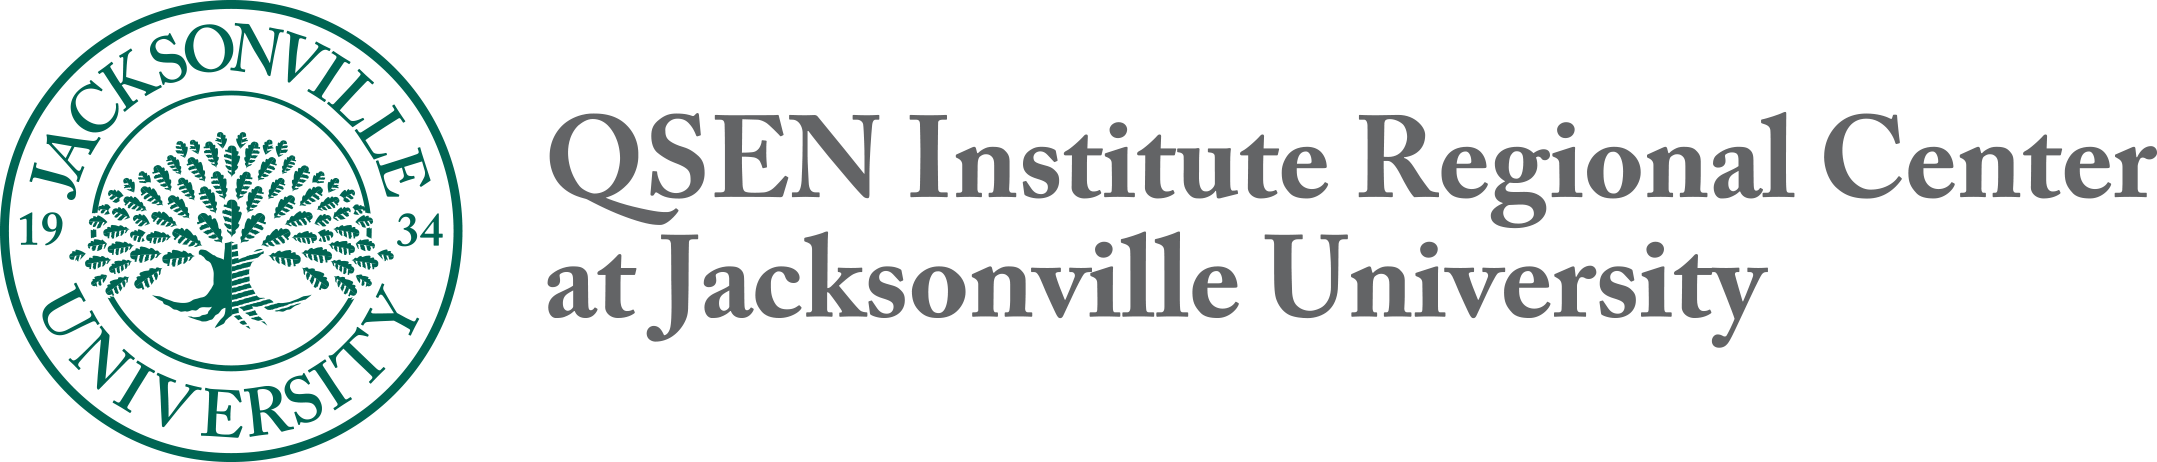 QSEN Institute Regional Center at Jacksonville University